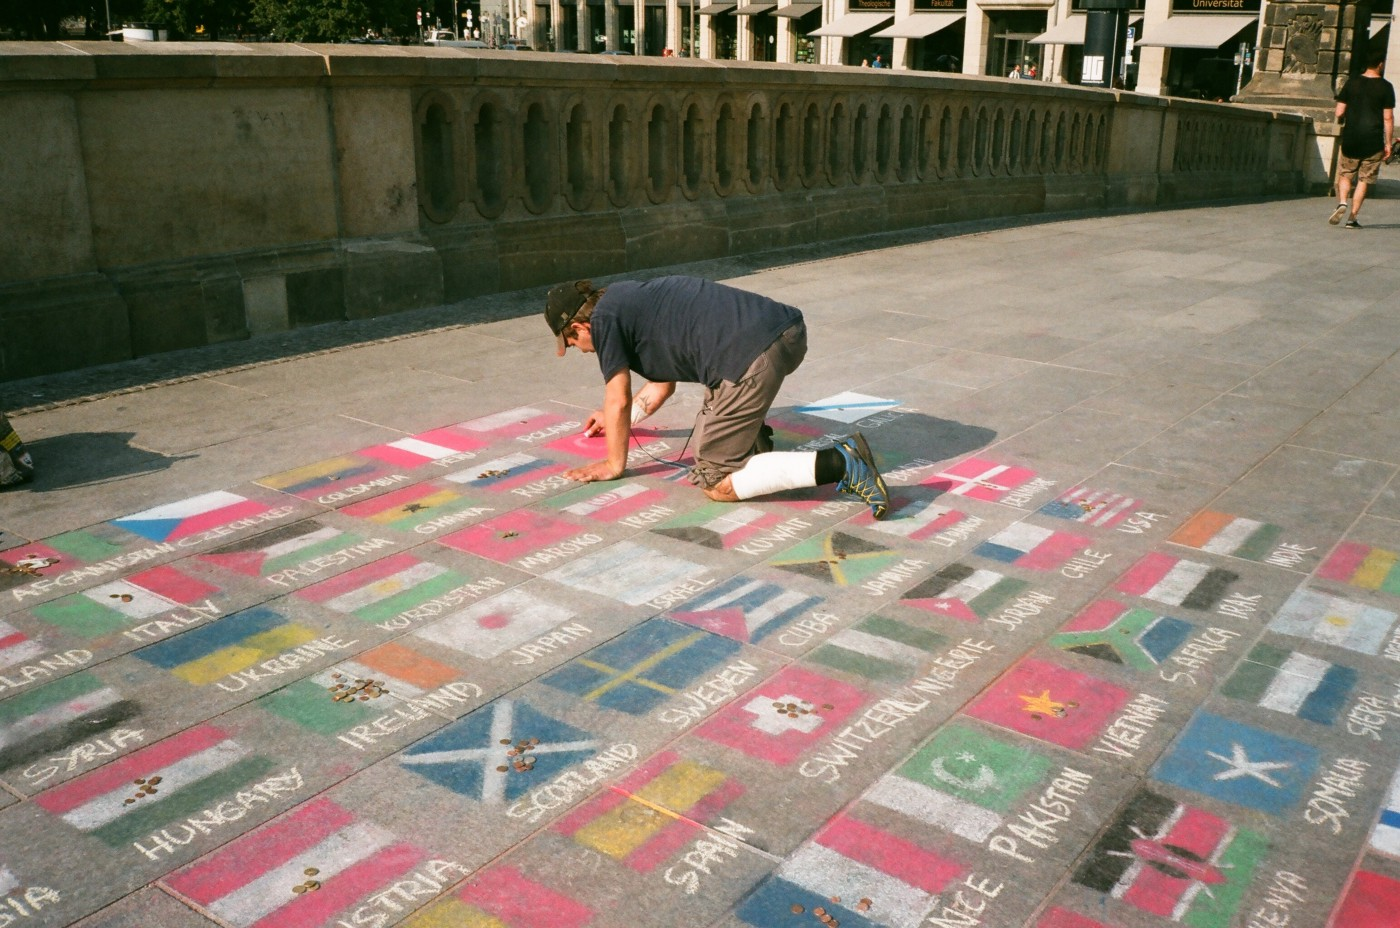 a man drawing flags of different countries with chalk on pavement